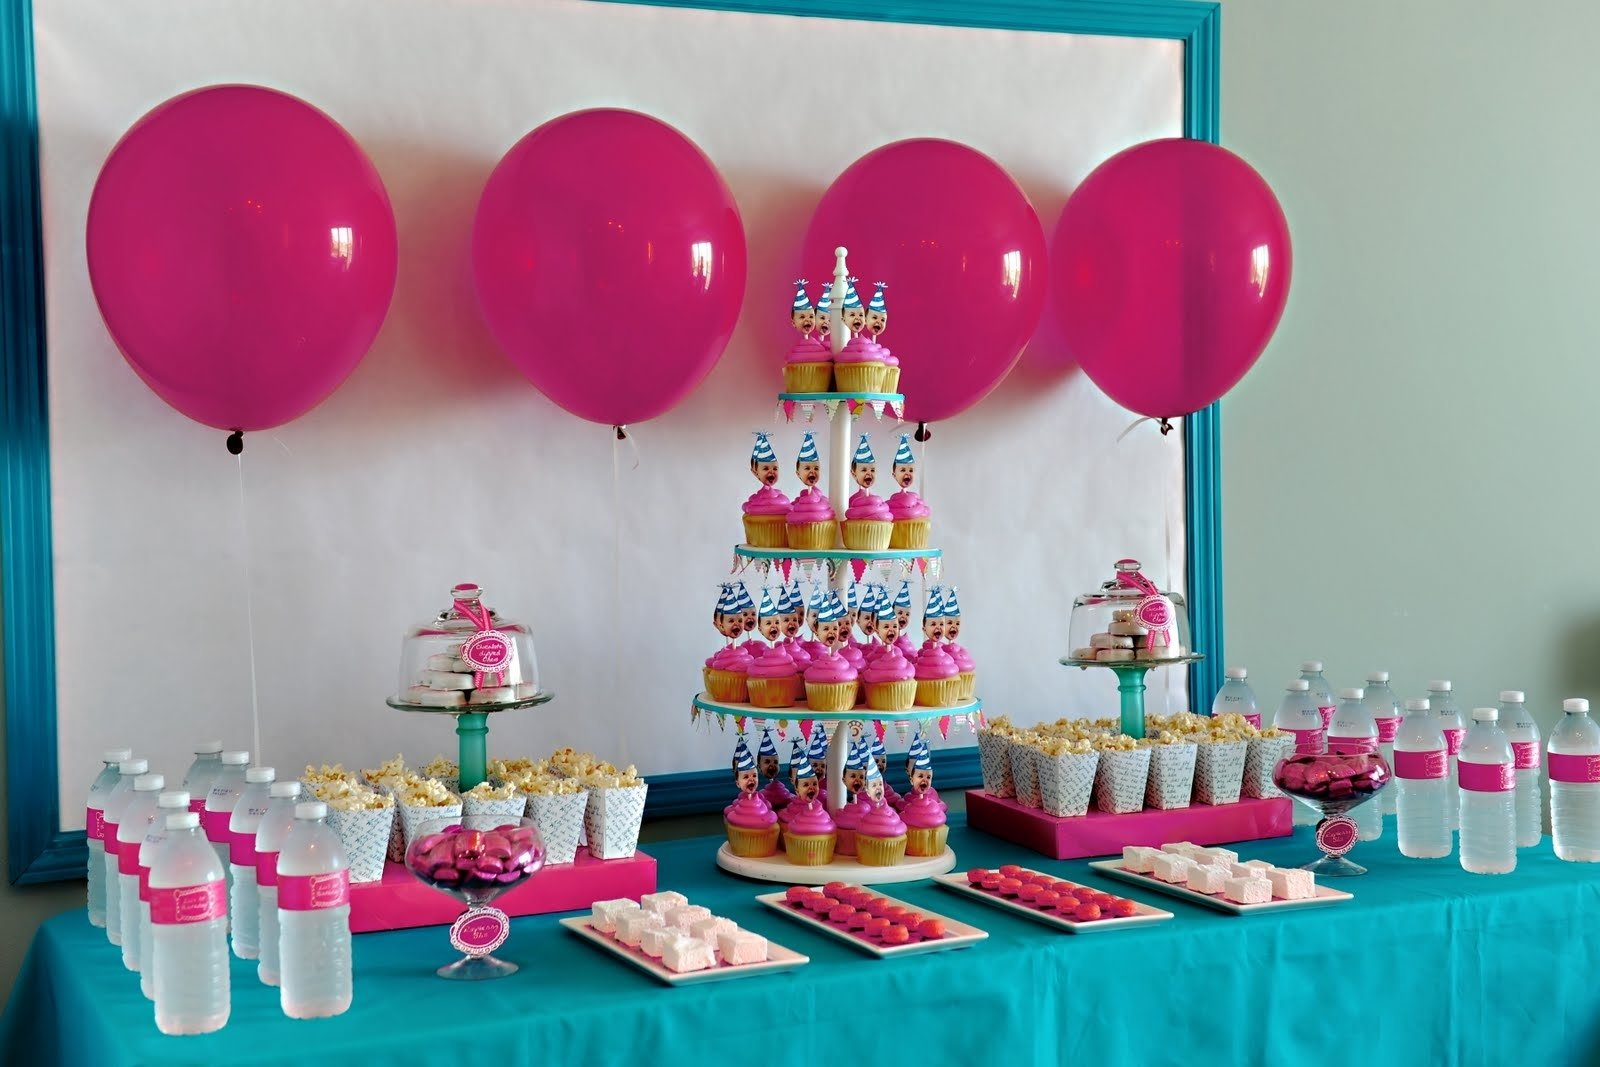 10 Best 7 Year Old Birthday Party Ideas elle belle creative one year old in a flash the dessert table 6 2020